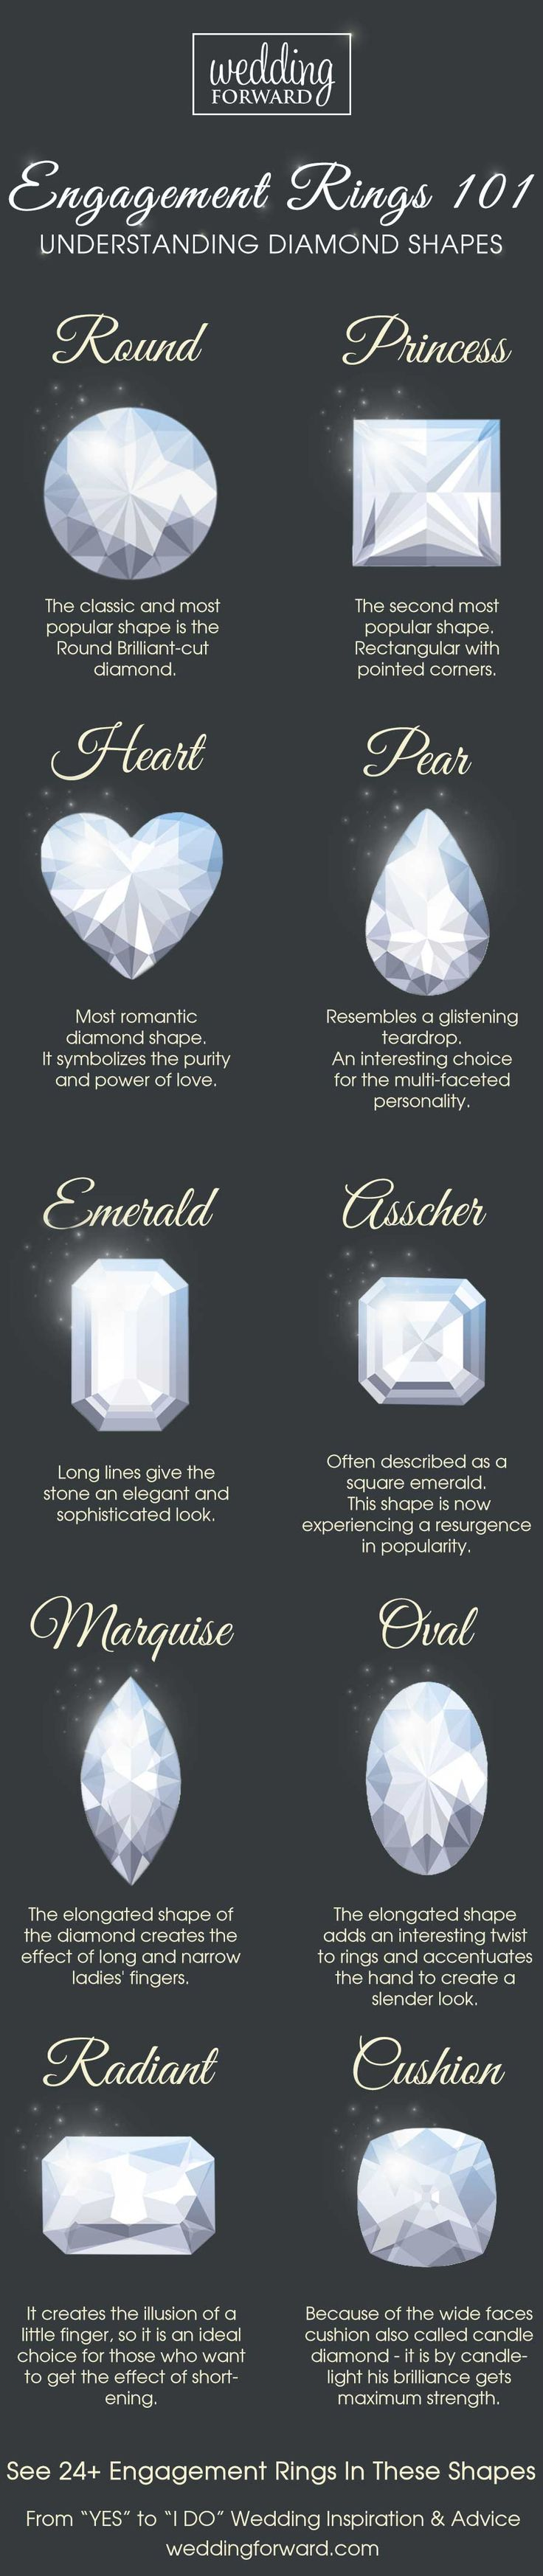 Engagement Ring Shapes and Cuts - Total Jewelry Photo Guide ❤ The diamond's shape and cut is one of an important setting. What engagement ring shape do you like more? See more: http://www.weddingforward.com/engagement-ring-shapes/ #wedding #engagement #rings